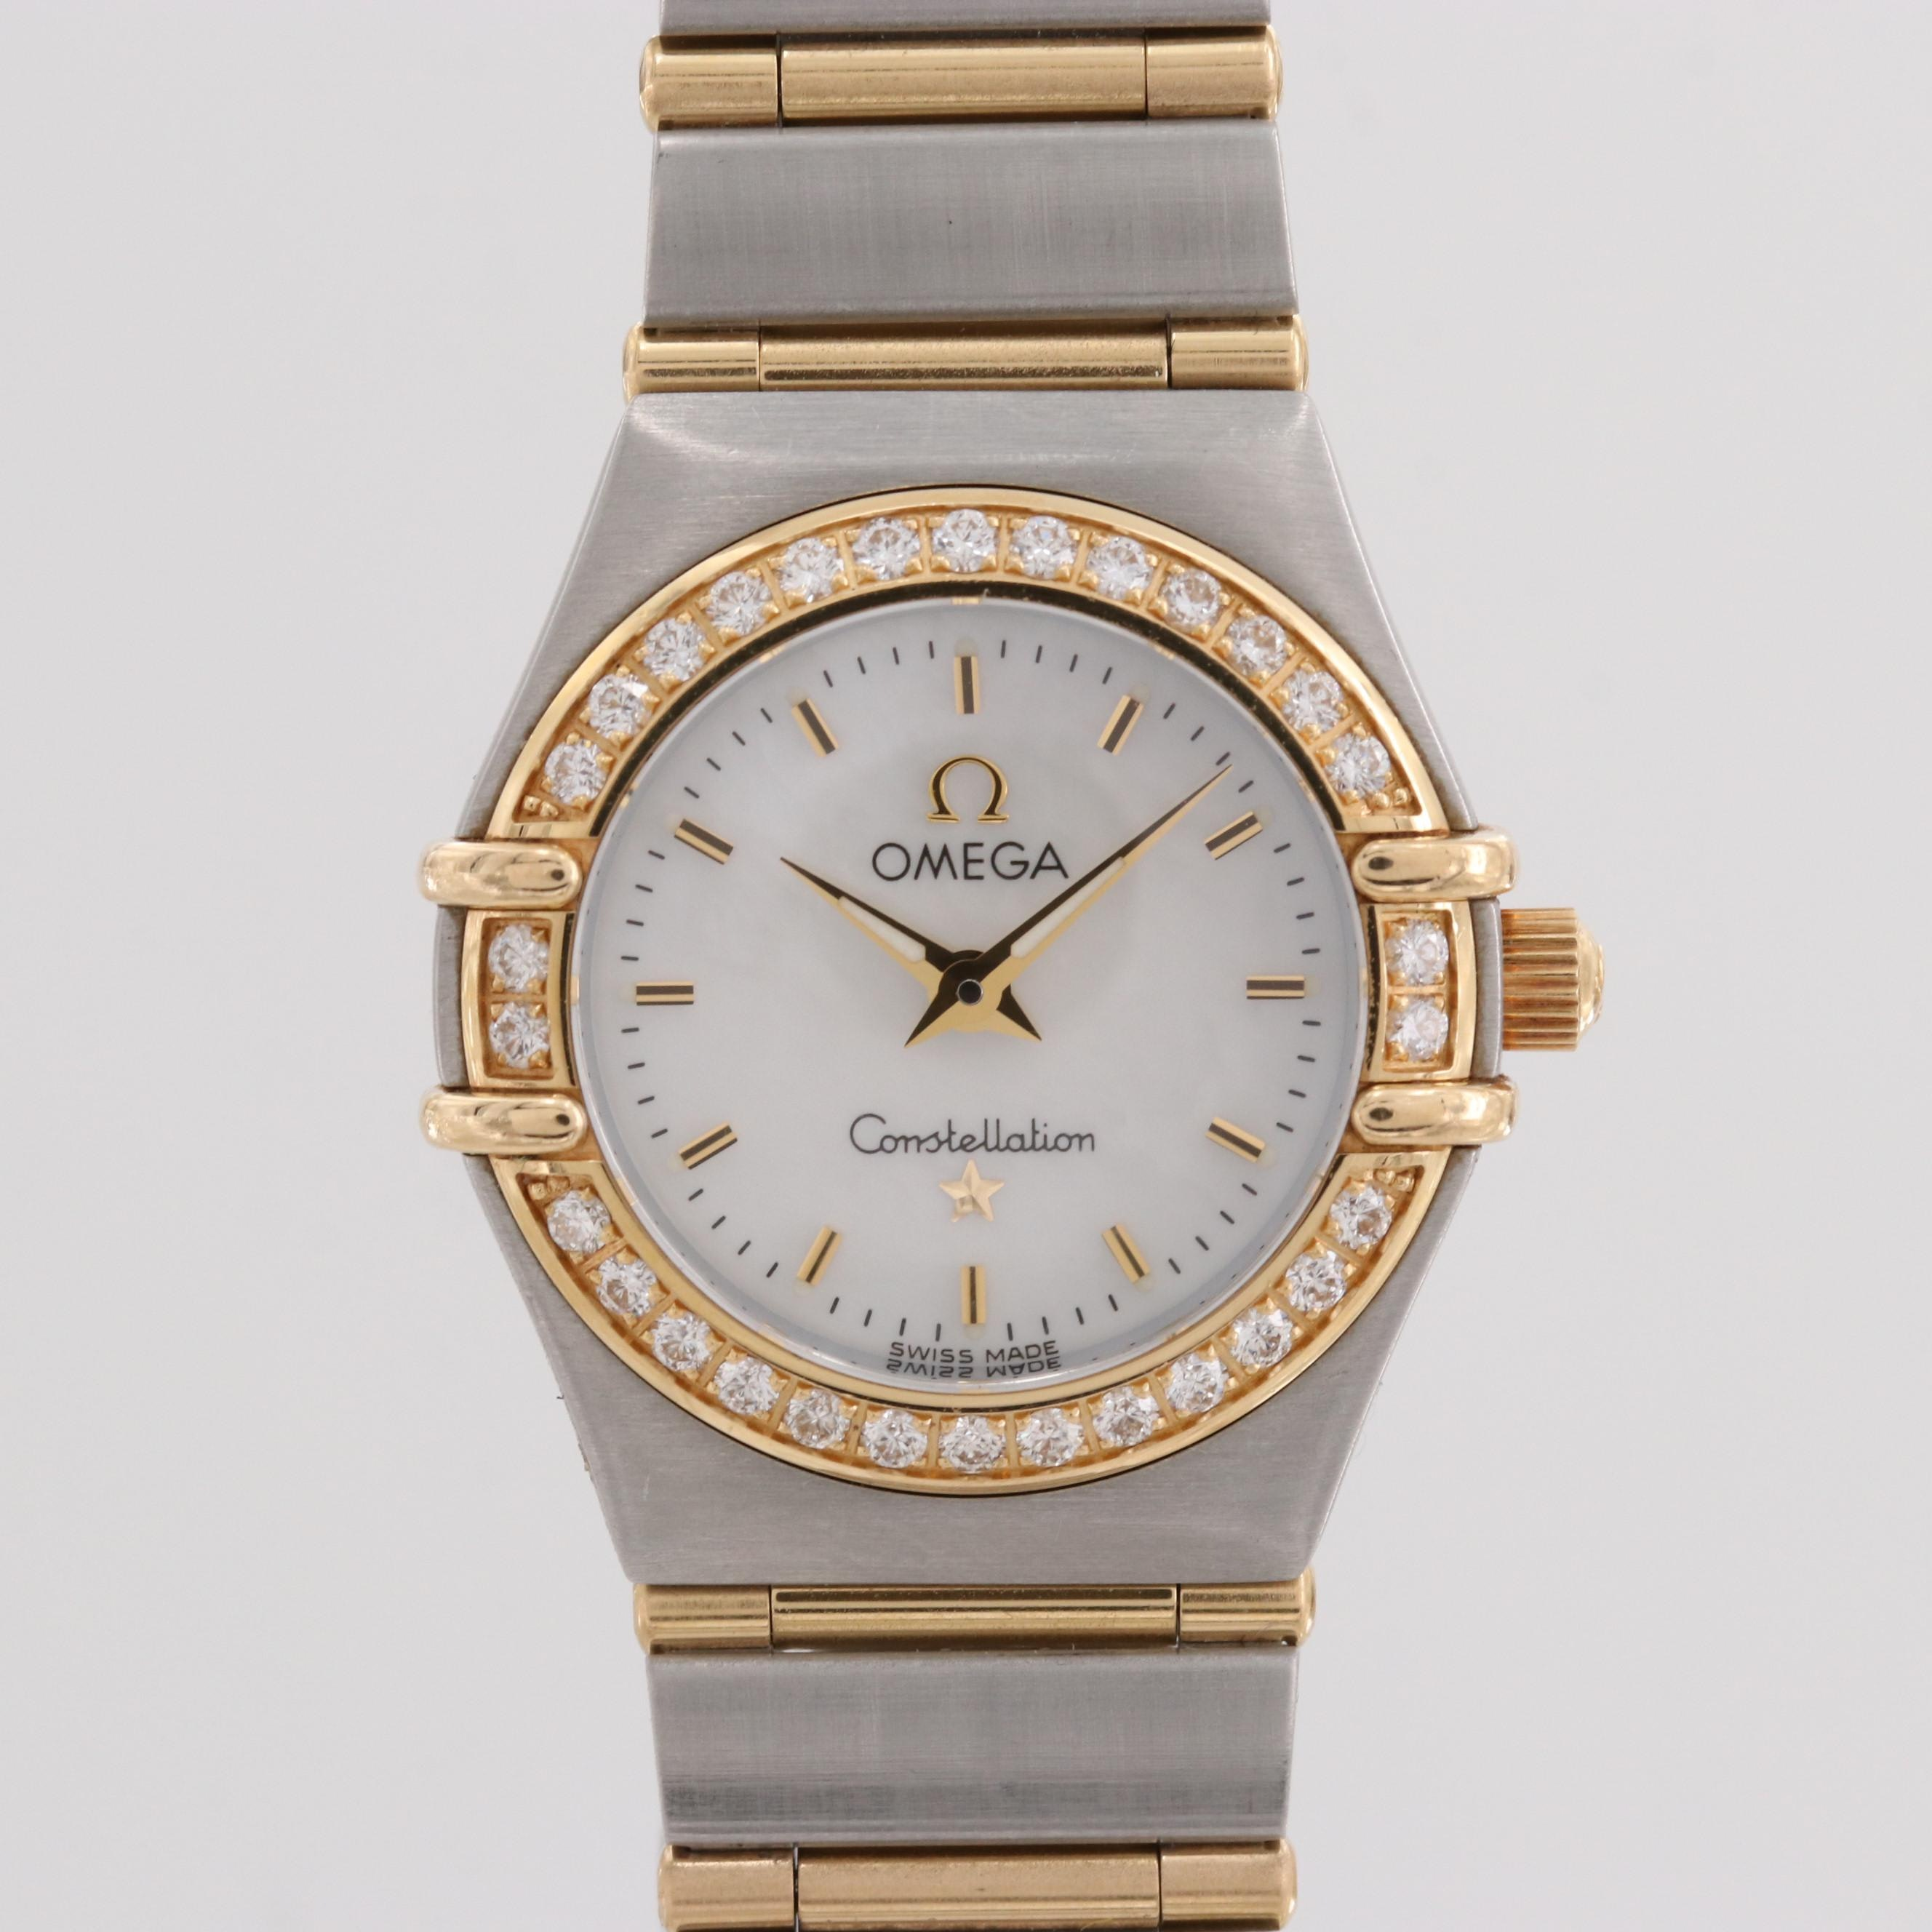 Omega Stainless Steel and 18K Yellow Gold Quartz Wristwatch With Diamond Bezel